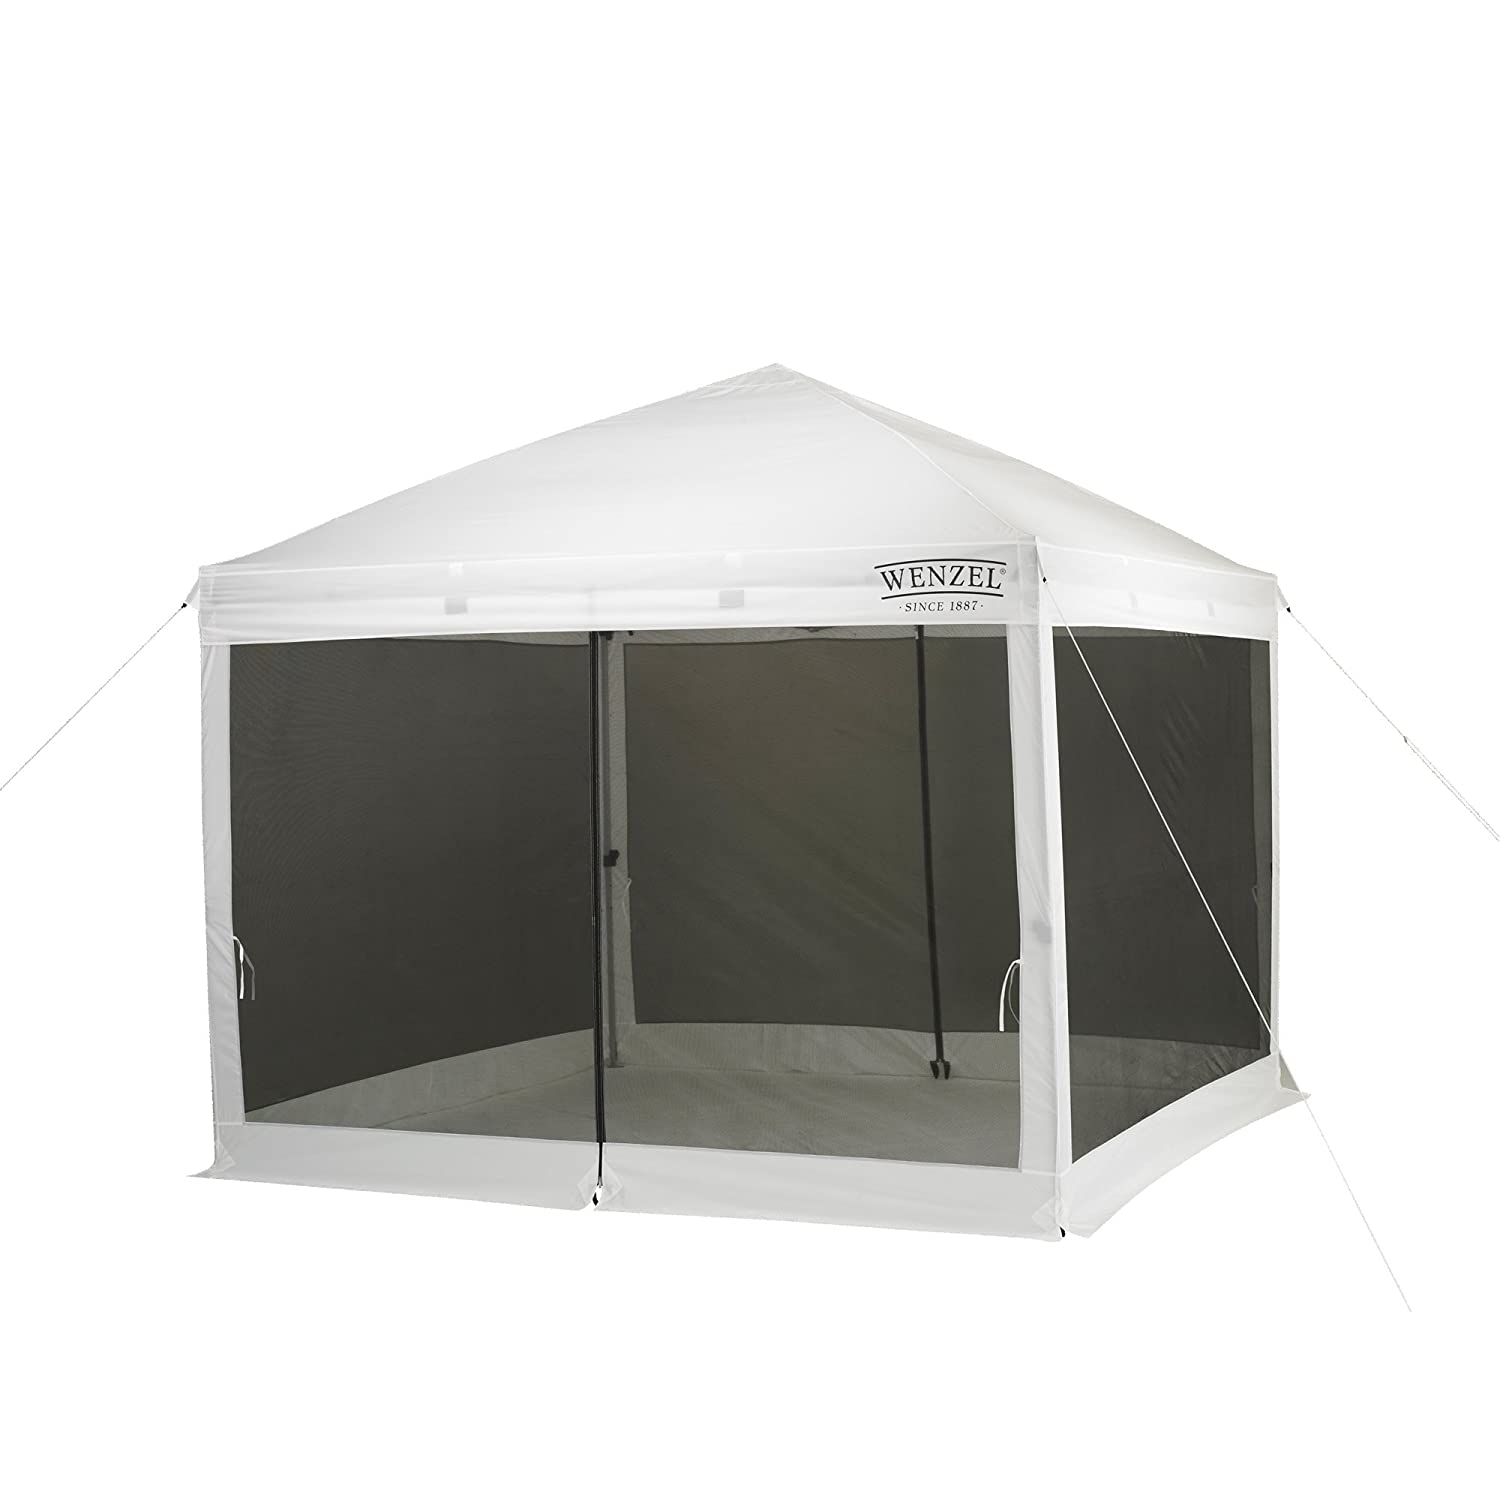 Wenzel Zelt Smartshade Screenhouse, 3 x 3 M, 861-33047